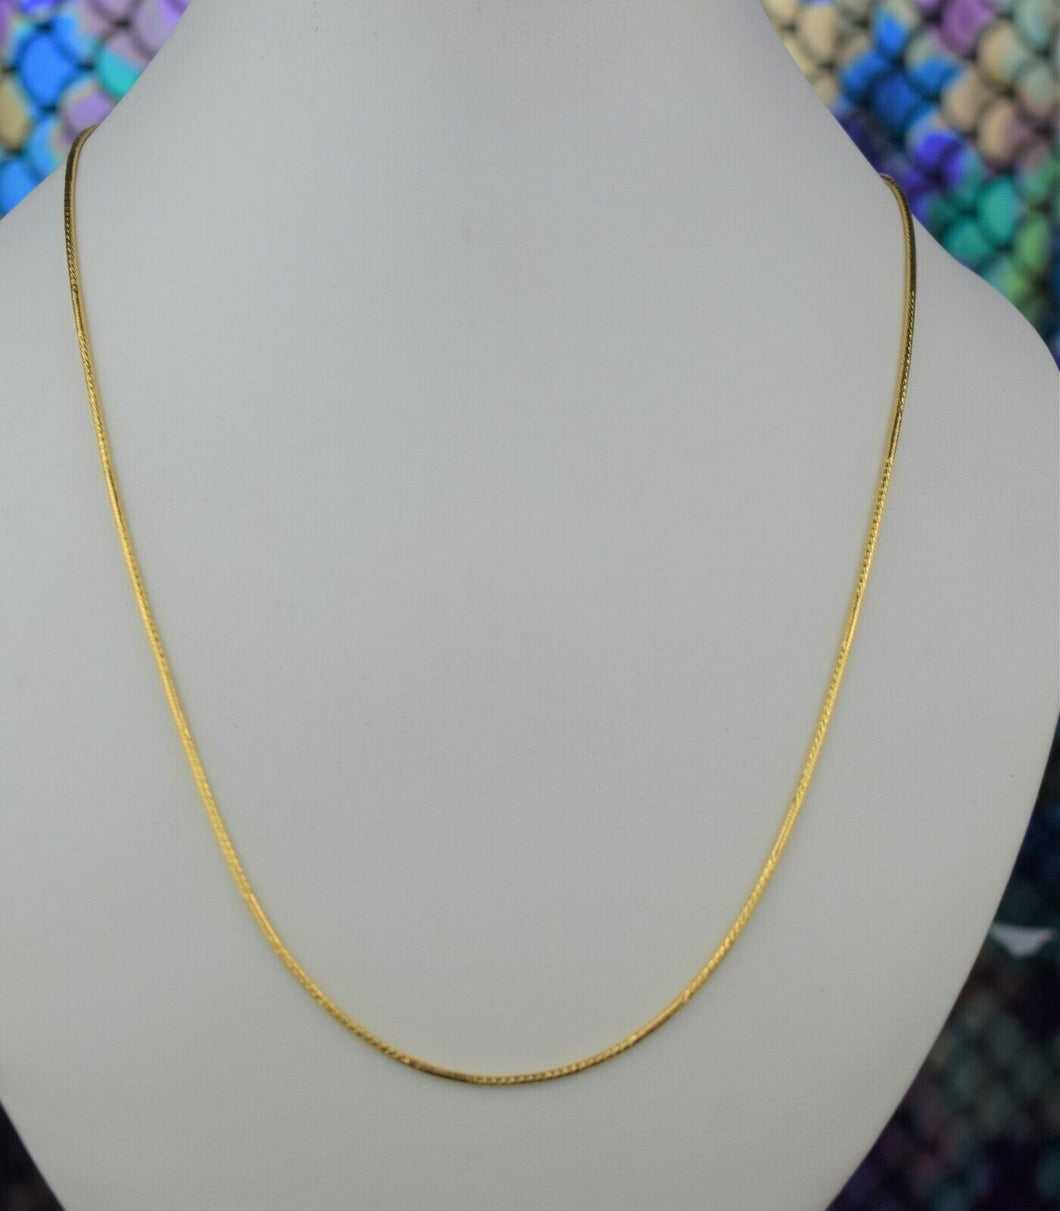 22k Chain Solid Gold Simple Elegant Glossy Snake Link Design C3492 - Royal Dubai Jewellers